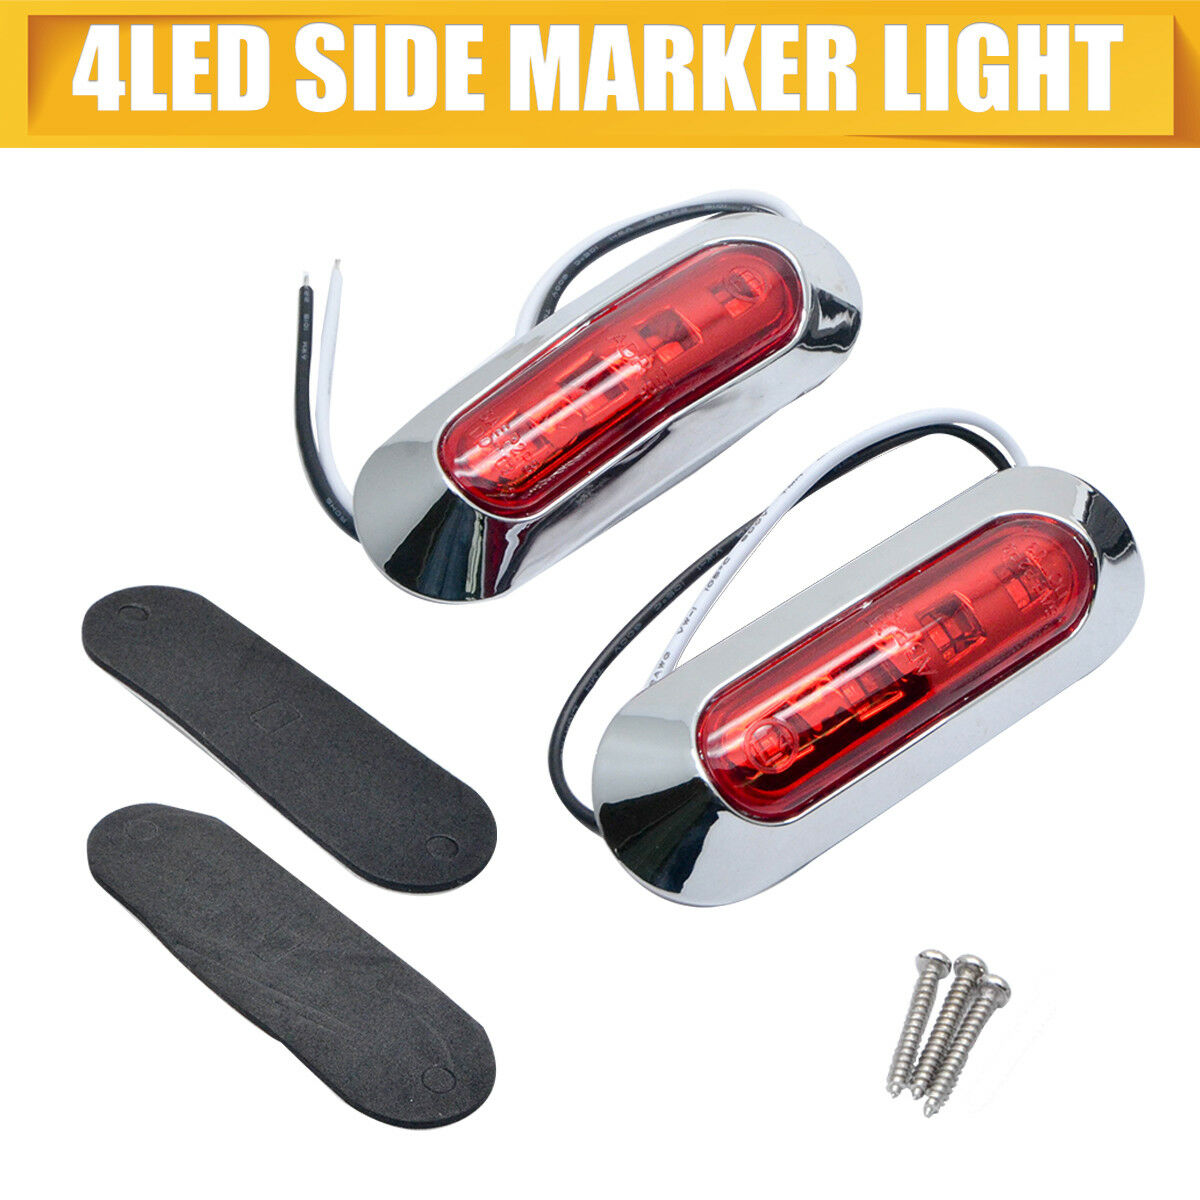 2x 12V Red 4 LED Marker Light Side Clearance Marker Light Car Truck Trailer Indicator Lamp